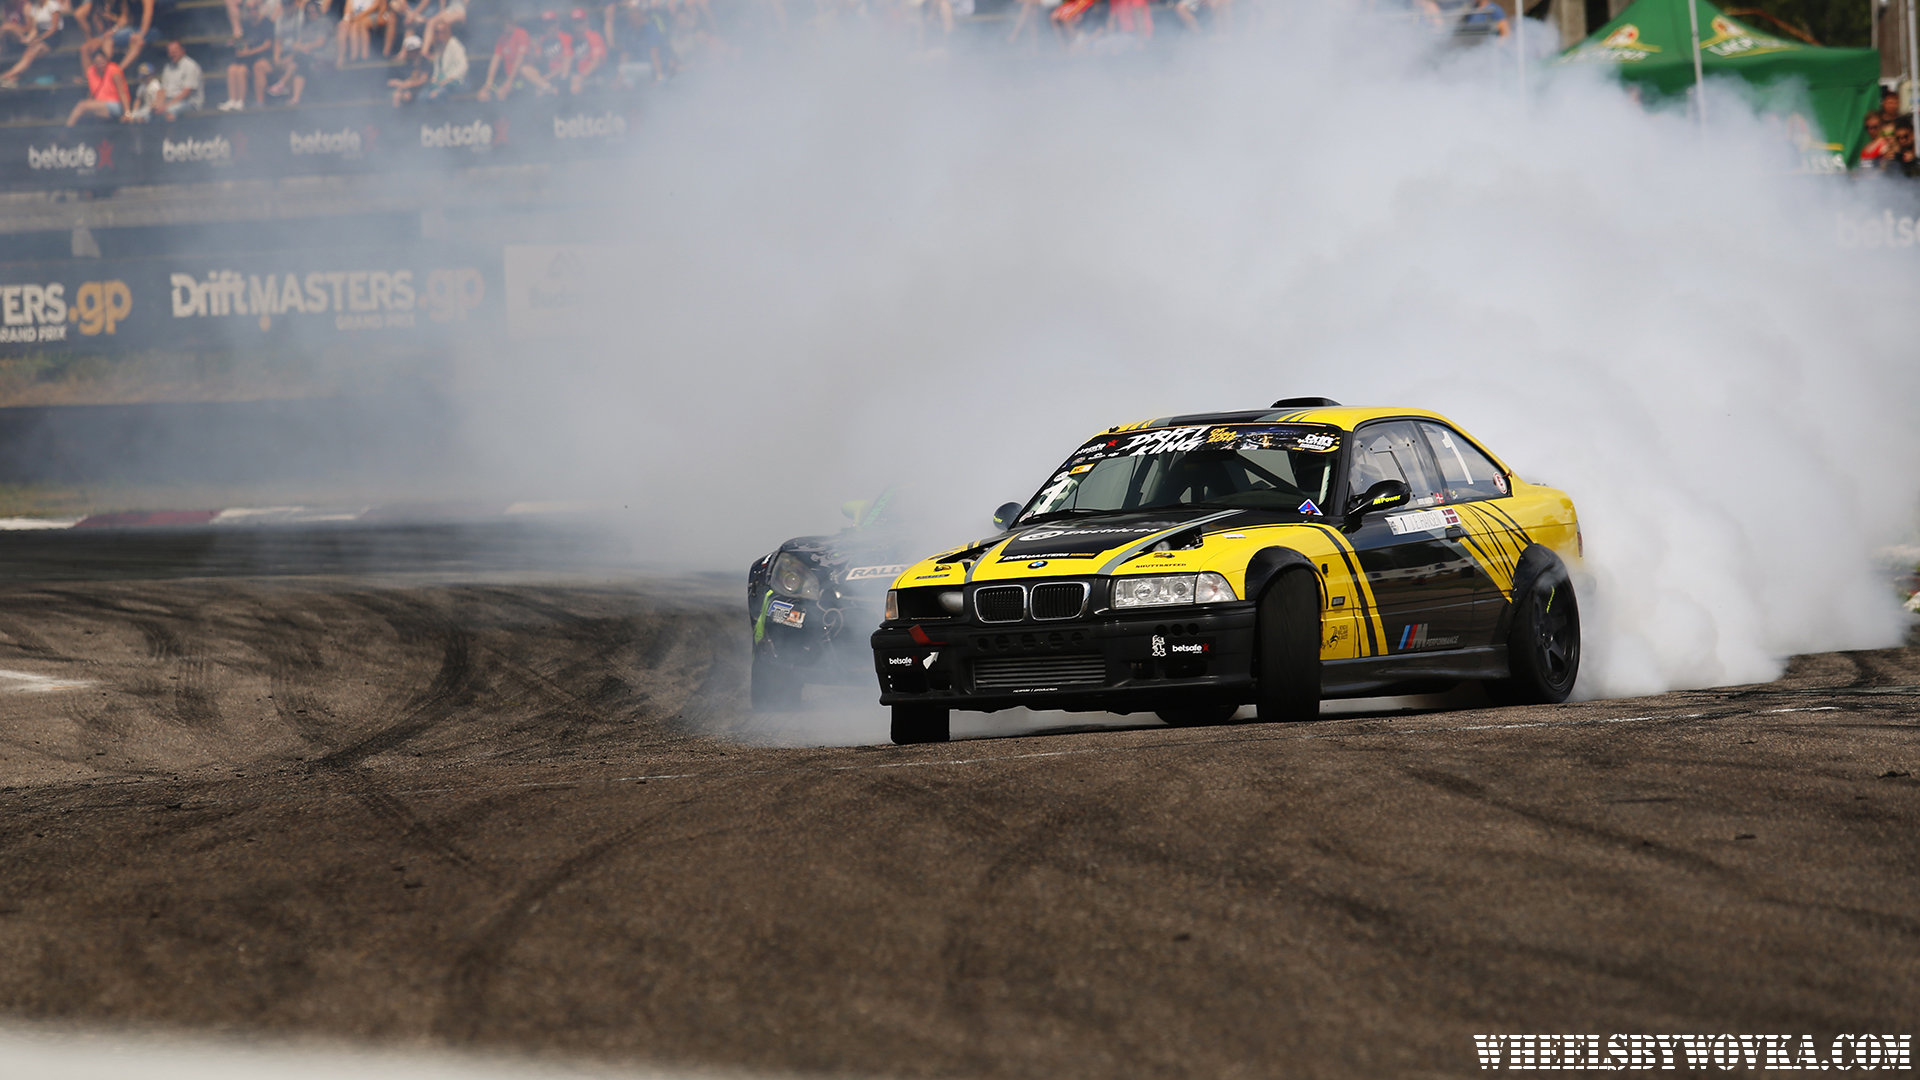 drift-masters-gp-latvia-2018-by-wheelsbywovka-22